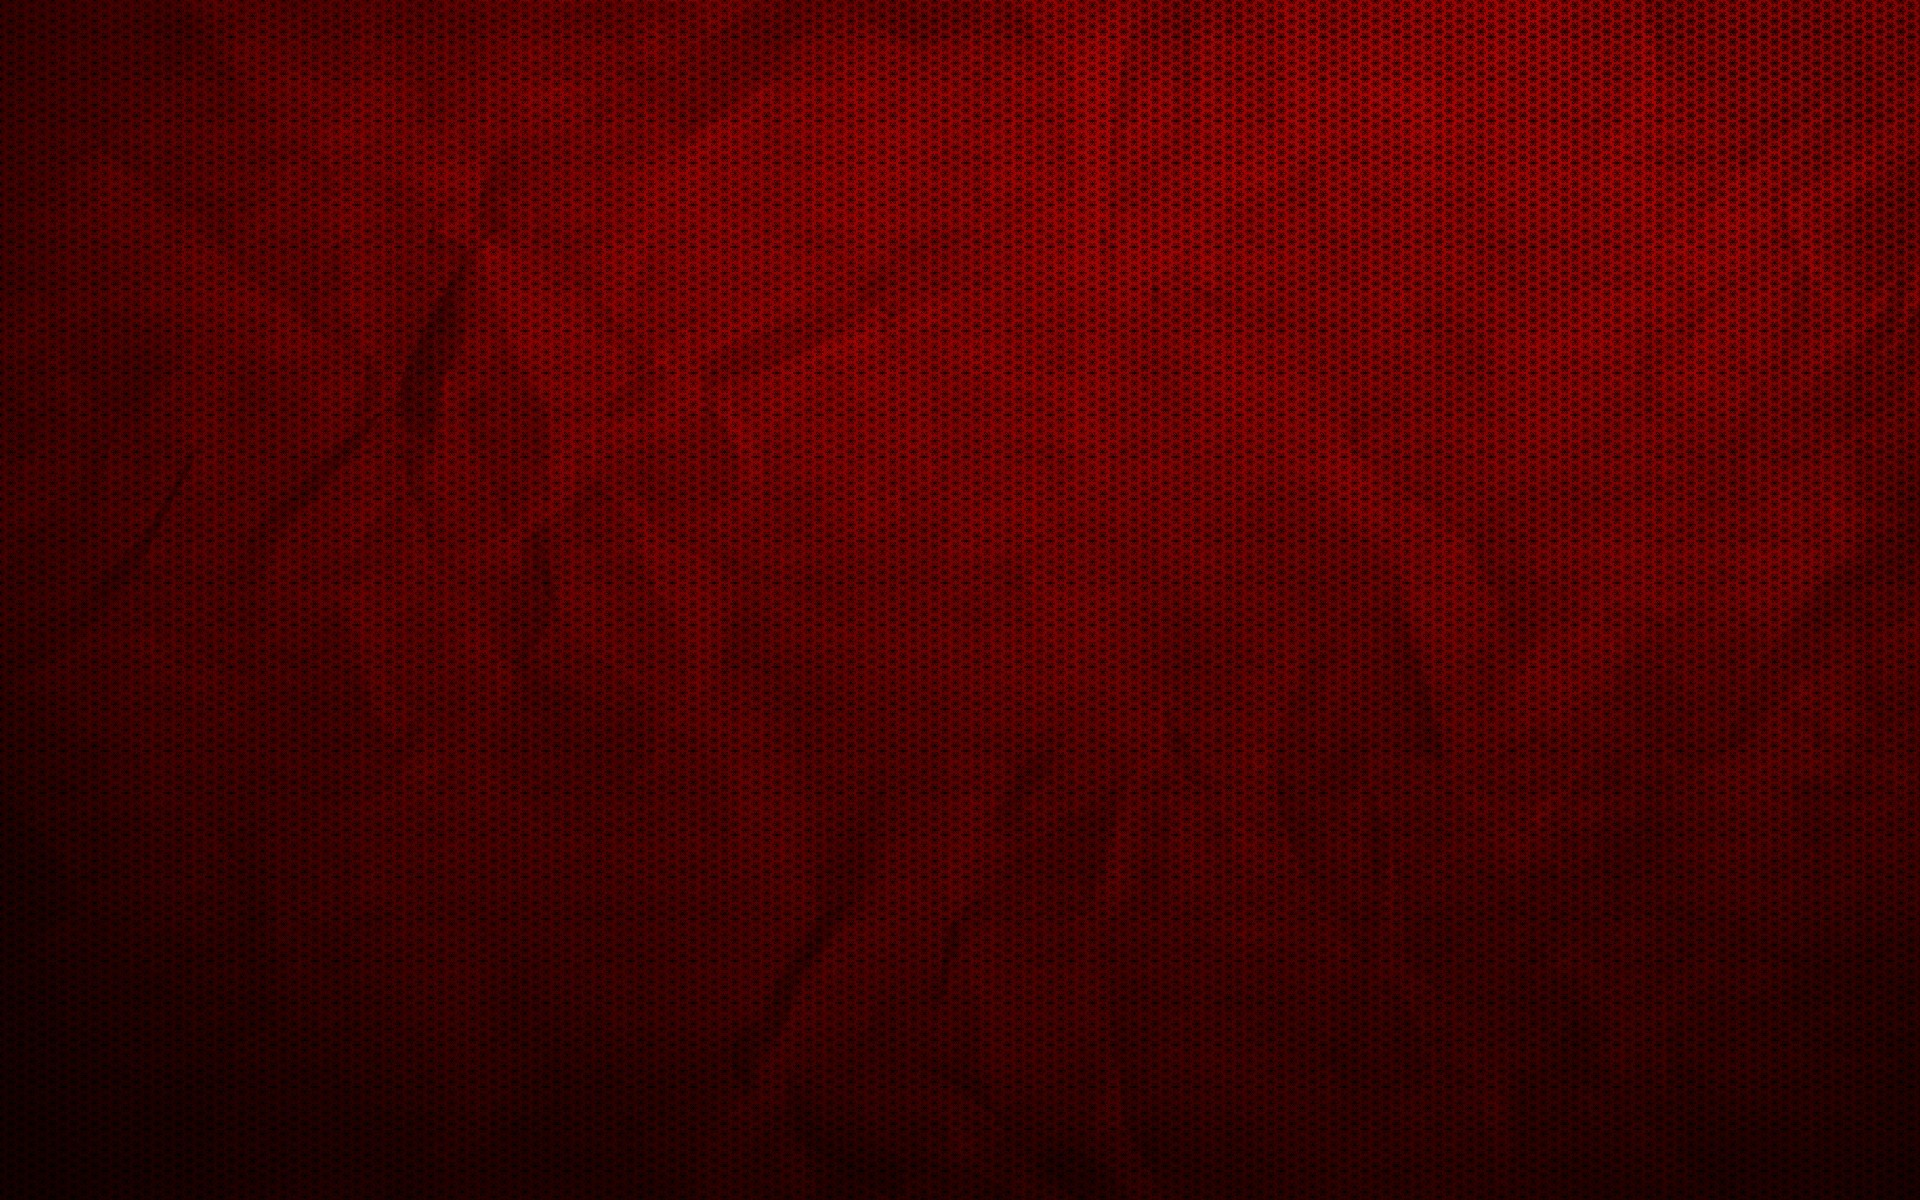 red color background hd - photo #46